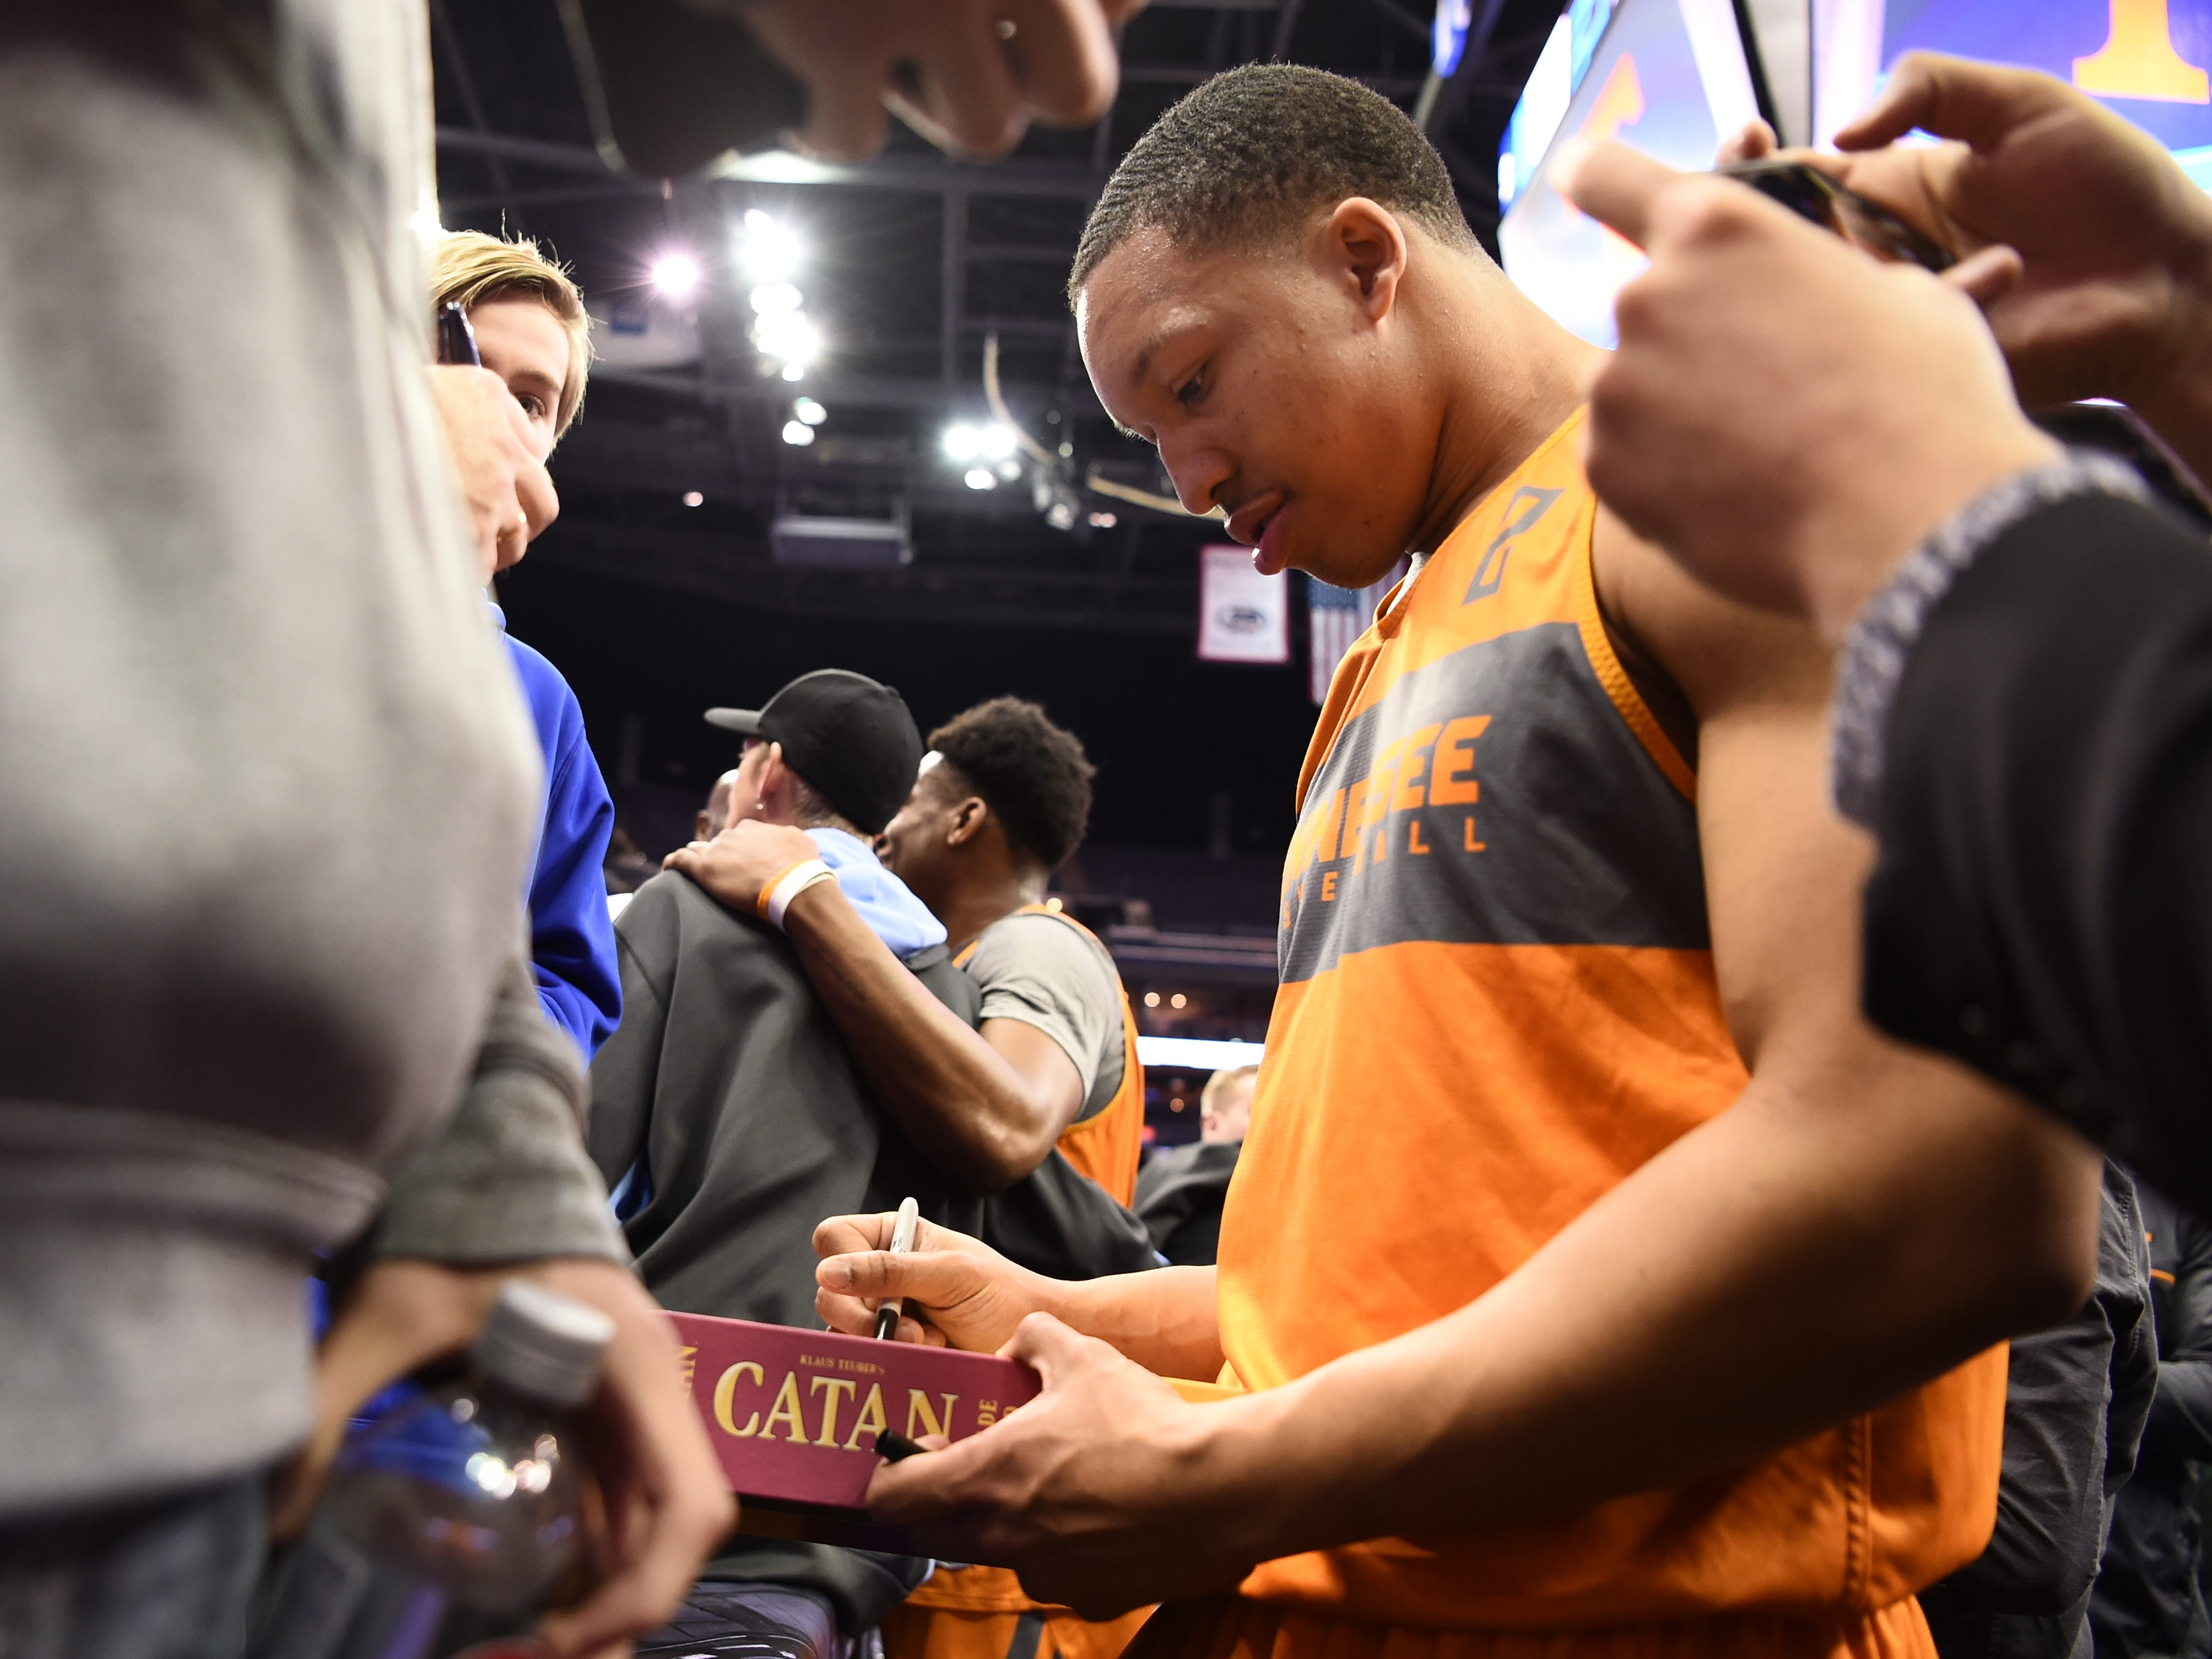 Tennessee forward Grant Williams (2) signs a fan's copy of the board game Catan after Tennessee's practice on Thursday, March 21, 2019, before their first round NCAA Tournament game against Colgate at Nationwide Arena in Columbus, Ohio.